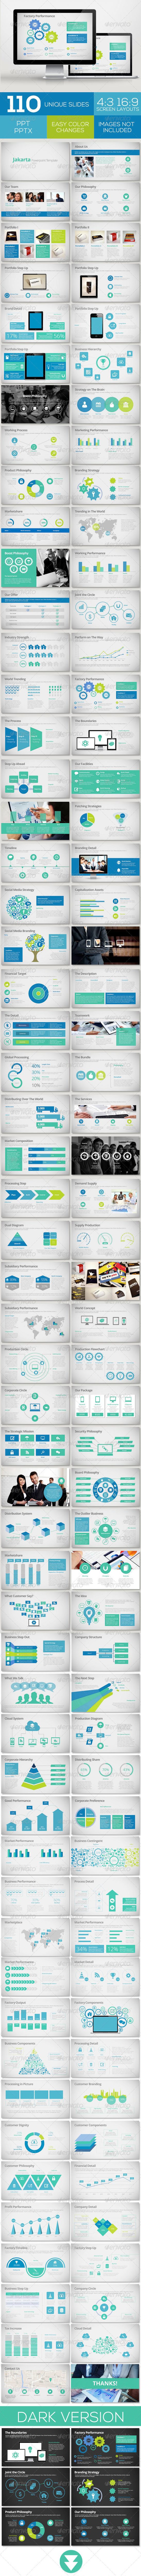 Jakarta Powerpoint Template Volume I - Business Powerpoint Templates